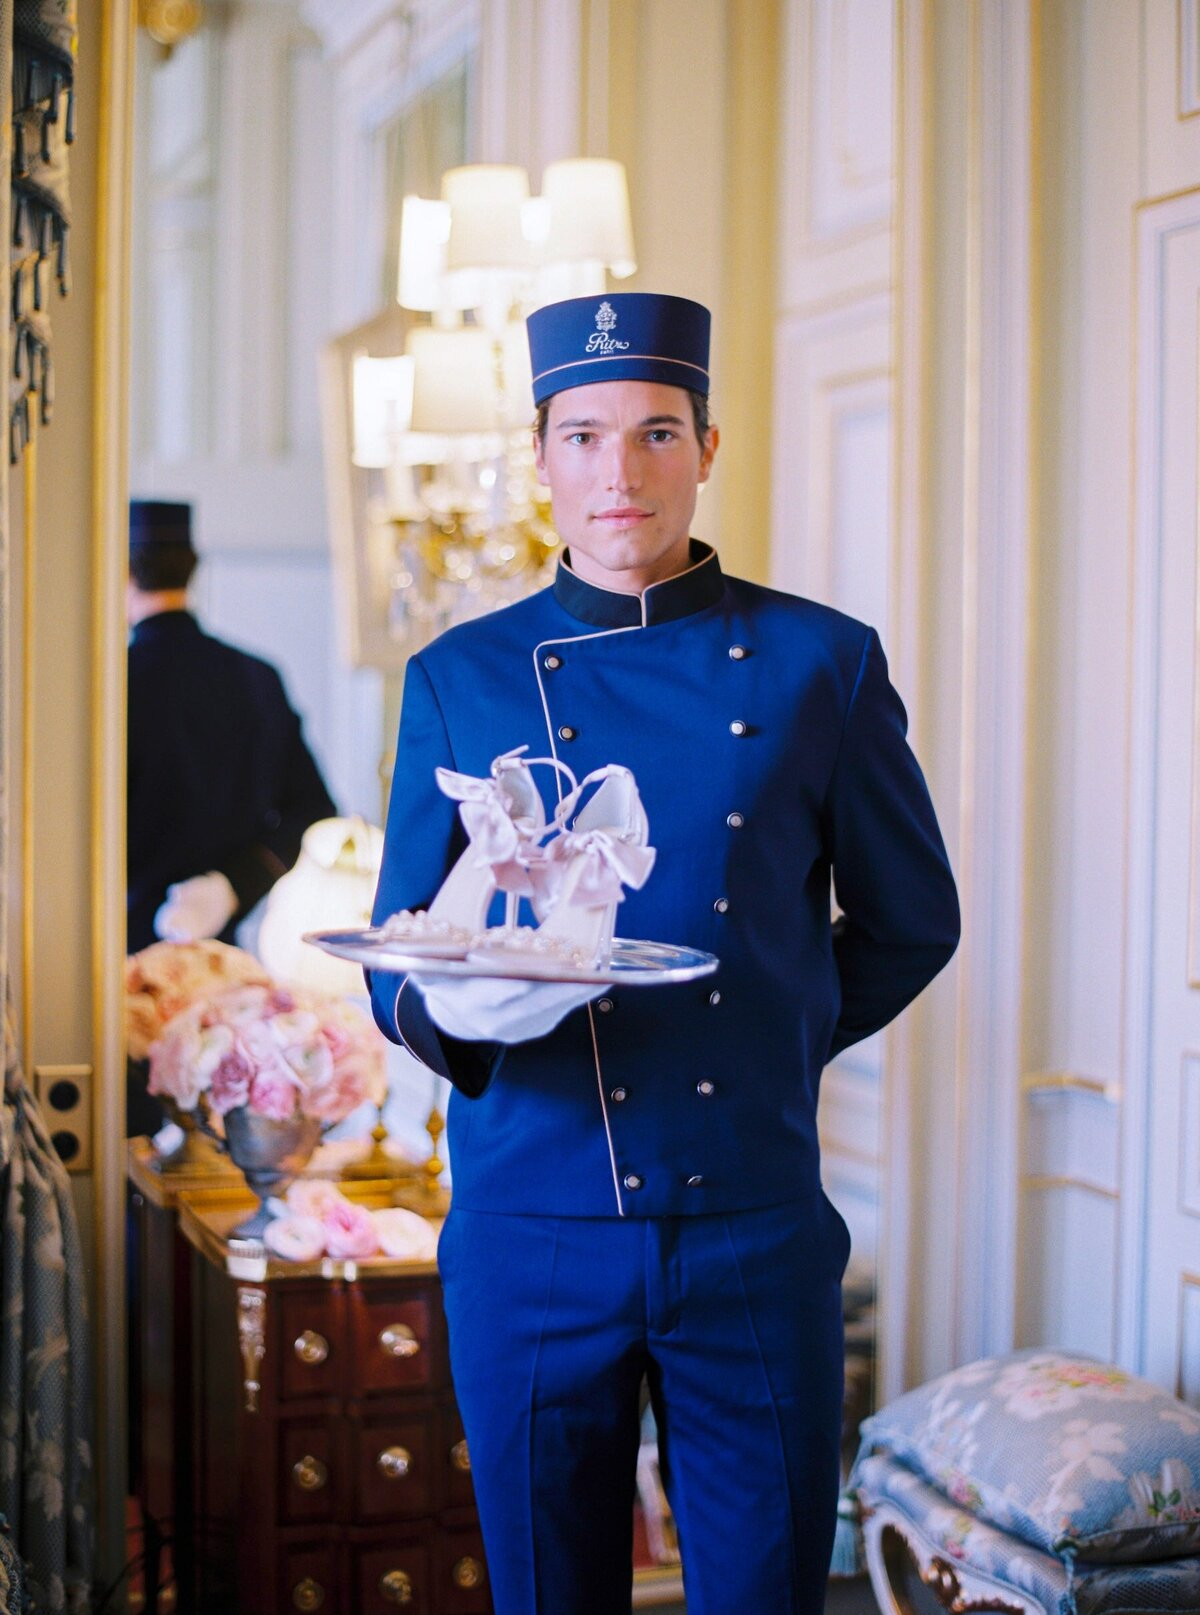 wedding-photographer-in-ritz-paris (27 of 29)